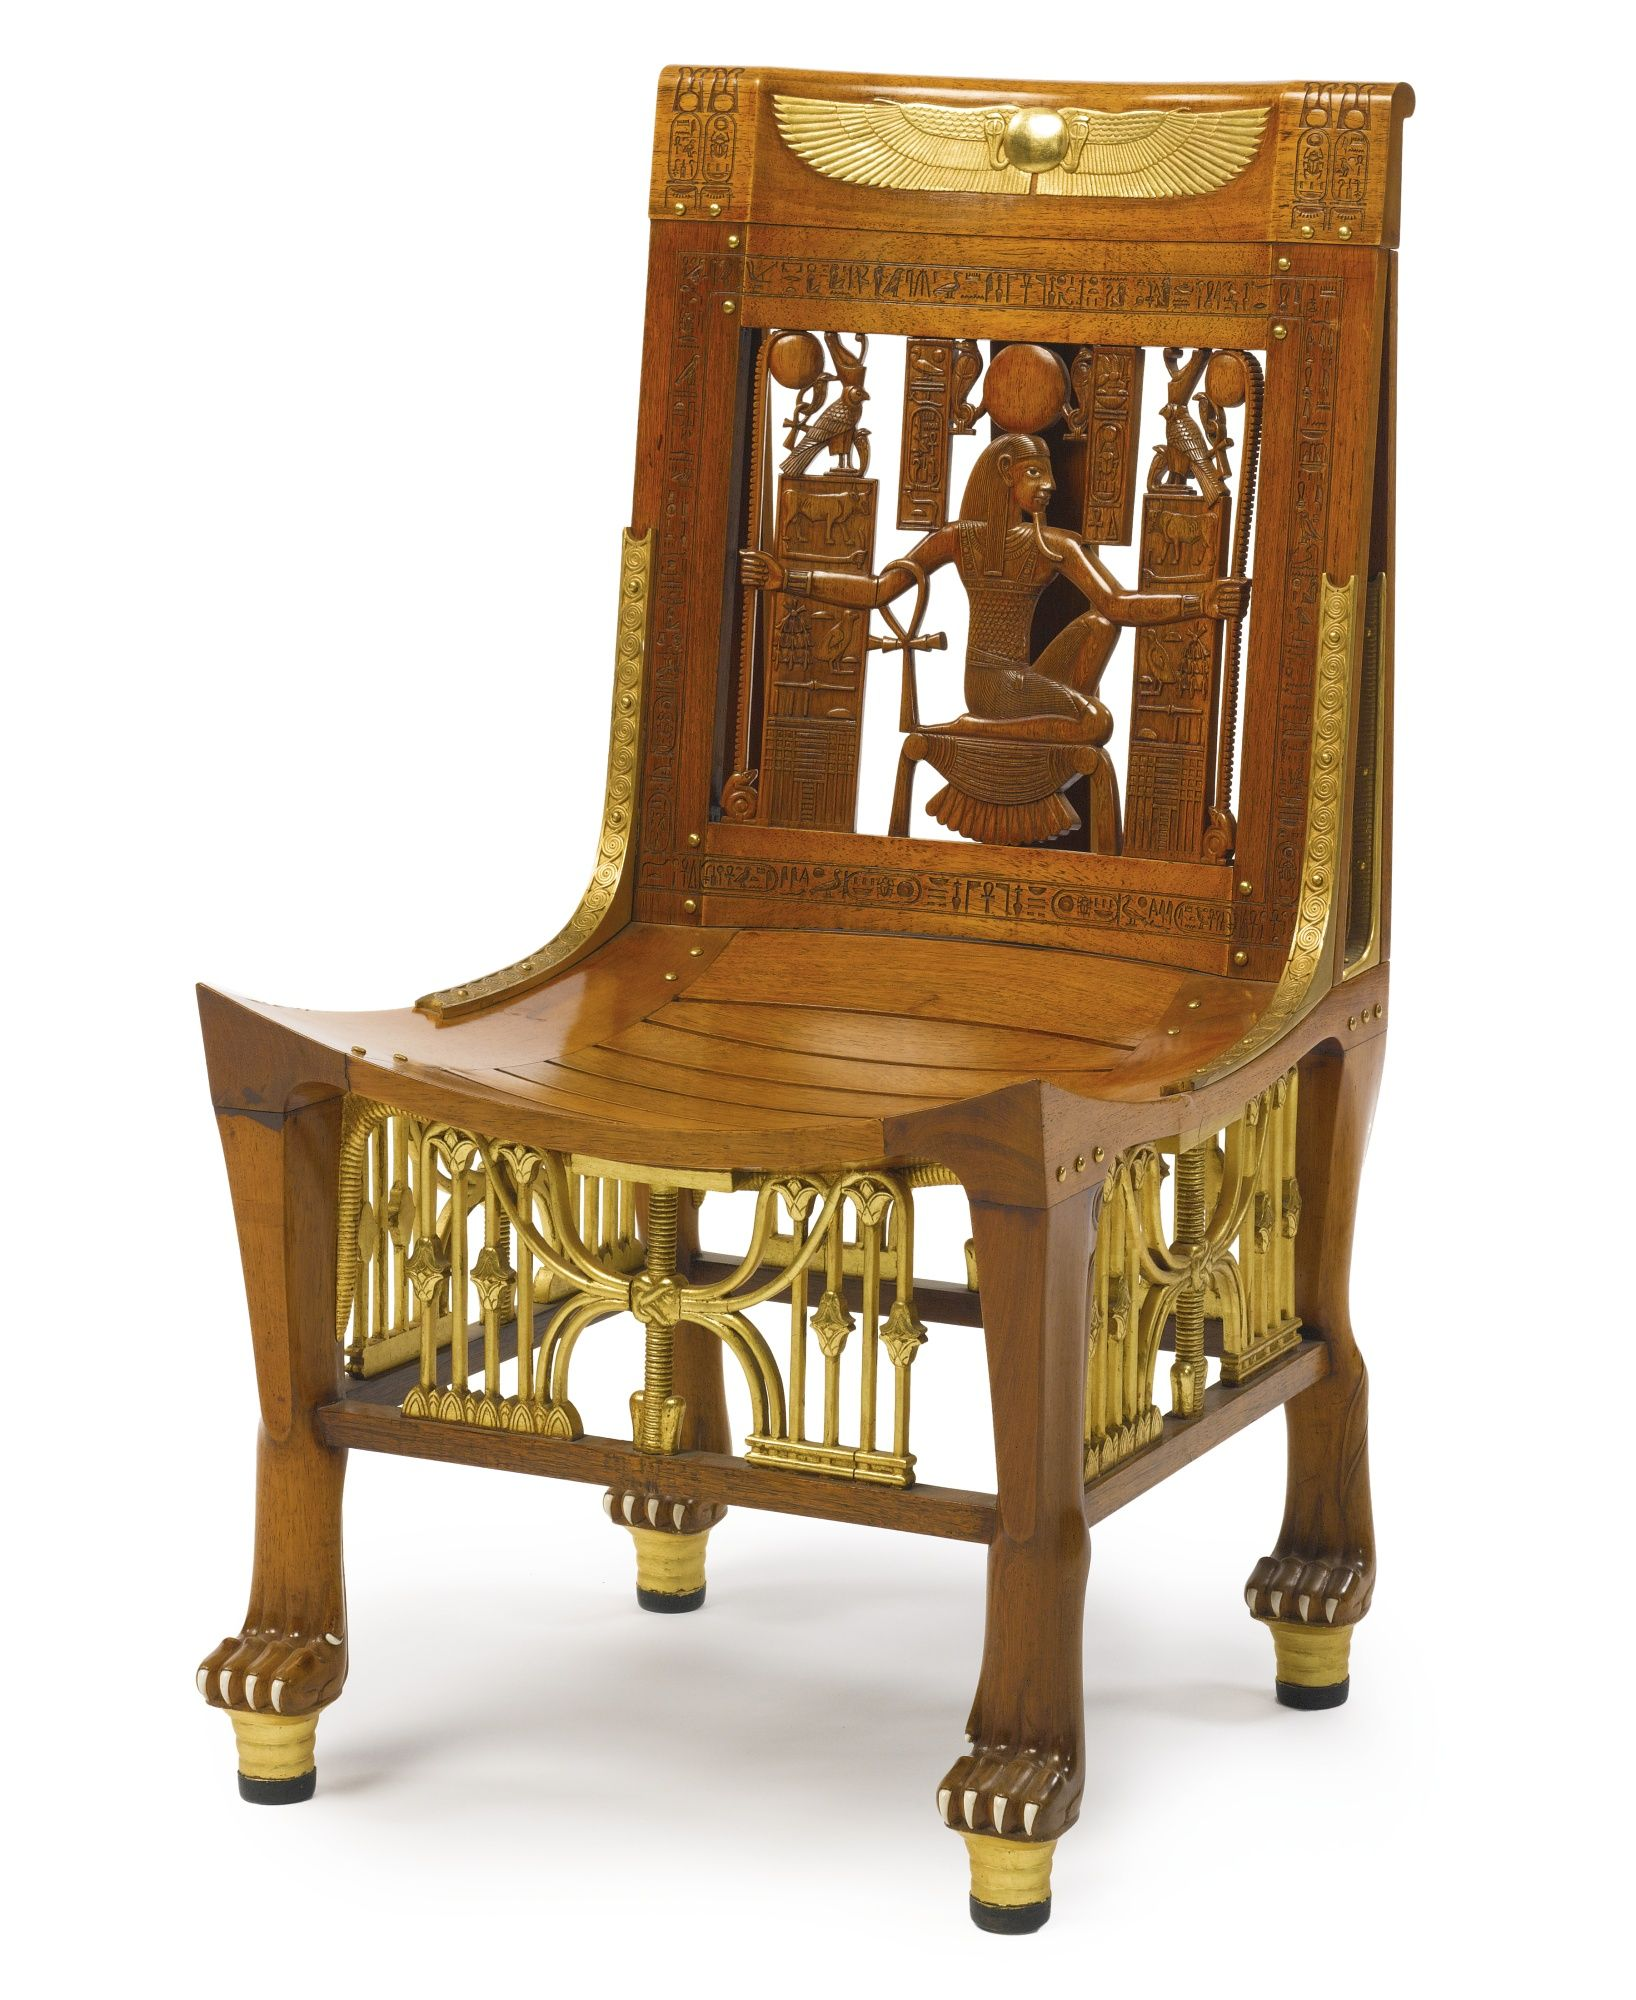 An Egyptomania Gilt Metal And Ivory Mounted Carved And Parcel Gilt Wooden Side Chair Cairo Circa 1925 Muebles Clasicos Egipto Muebles